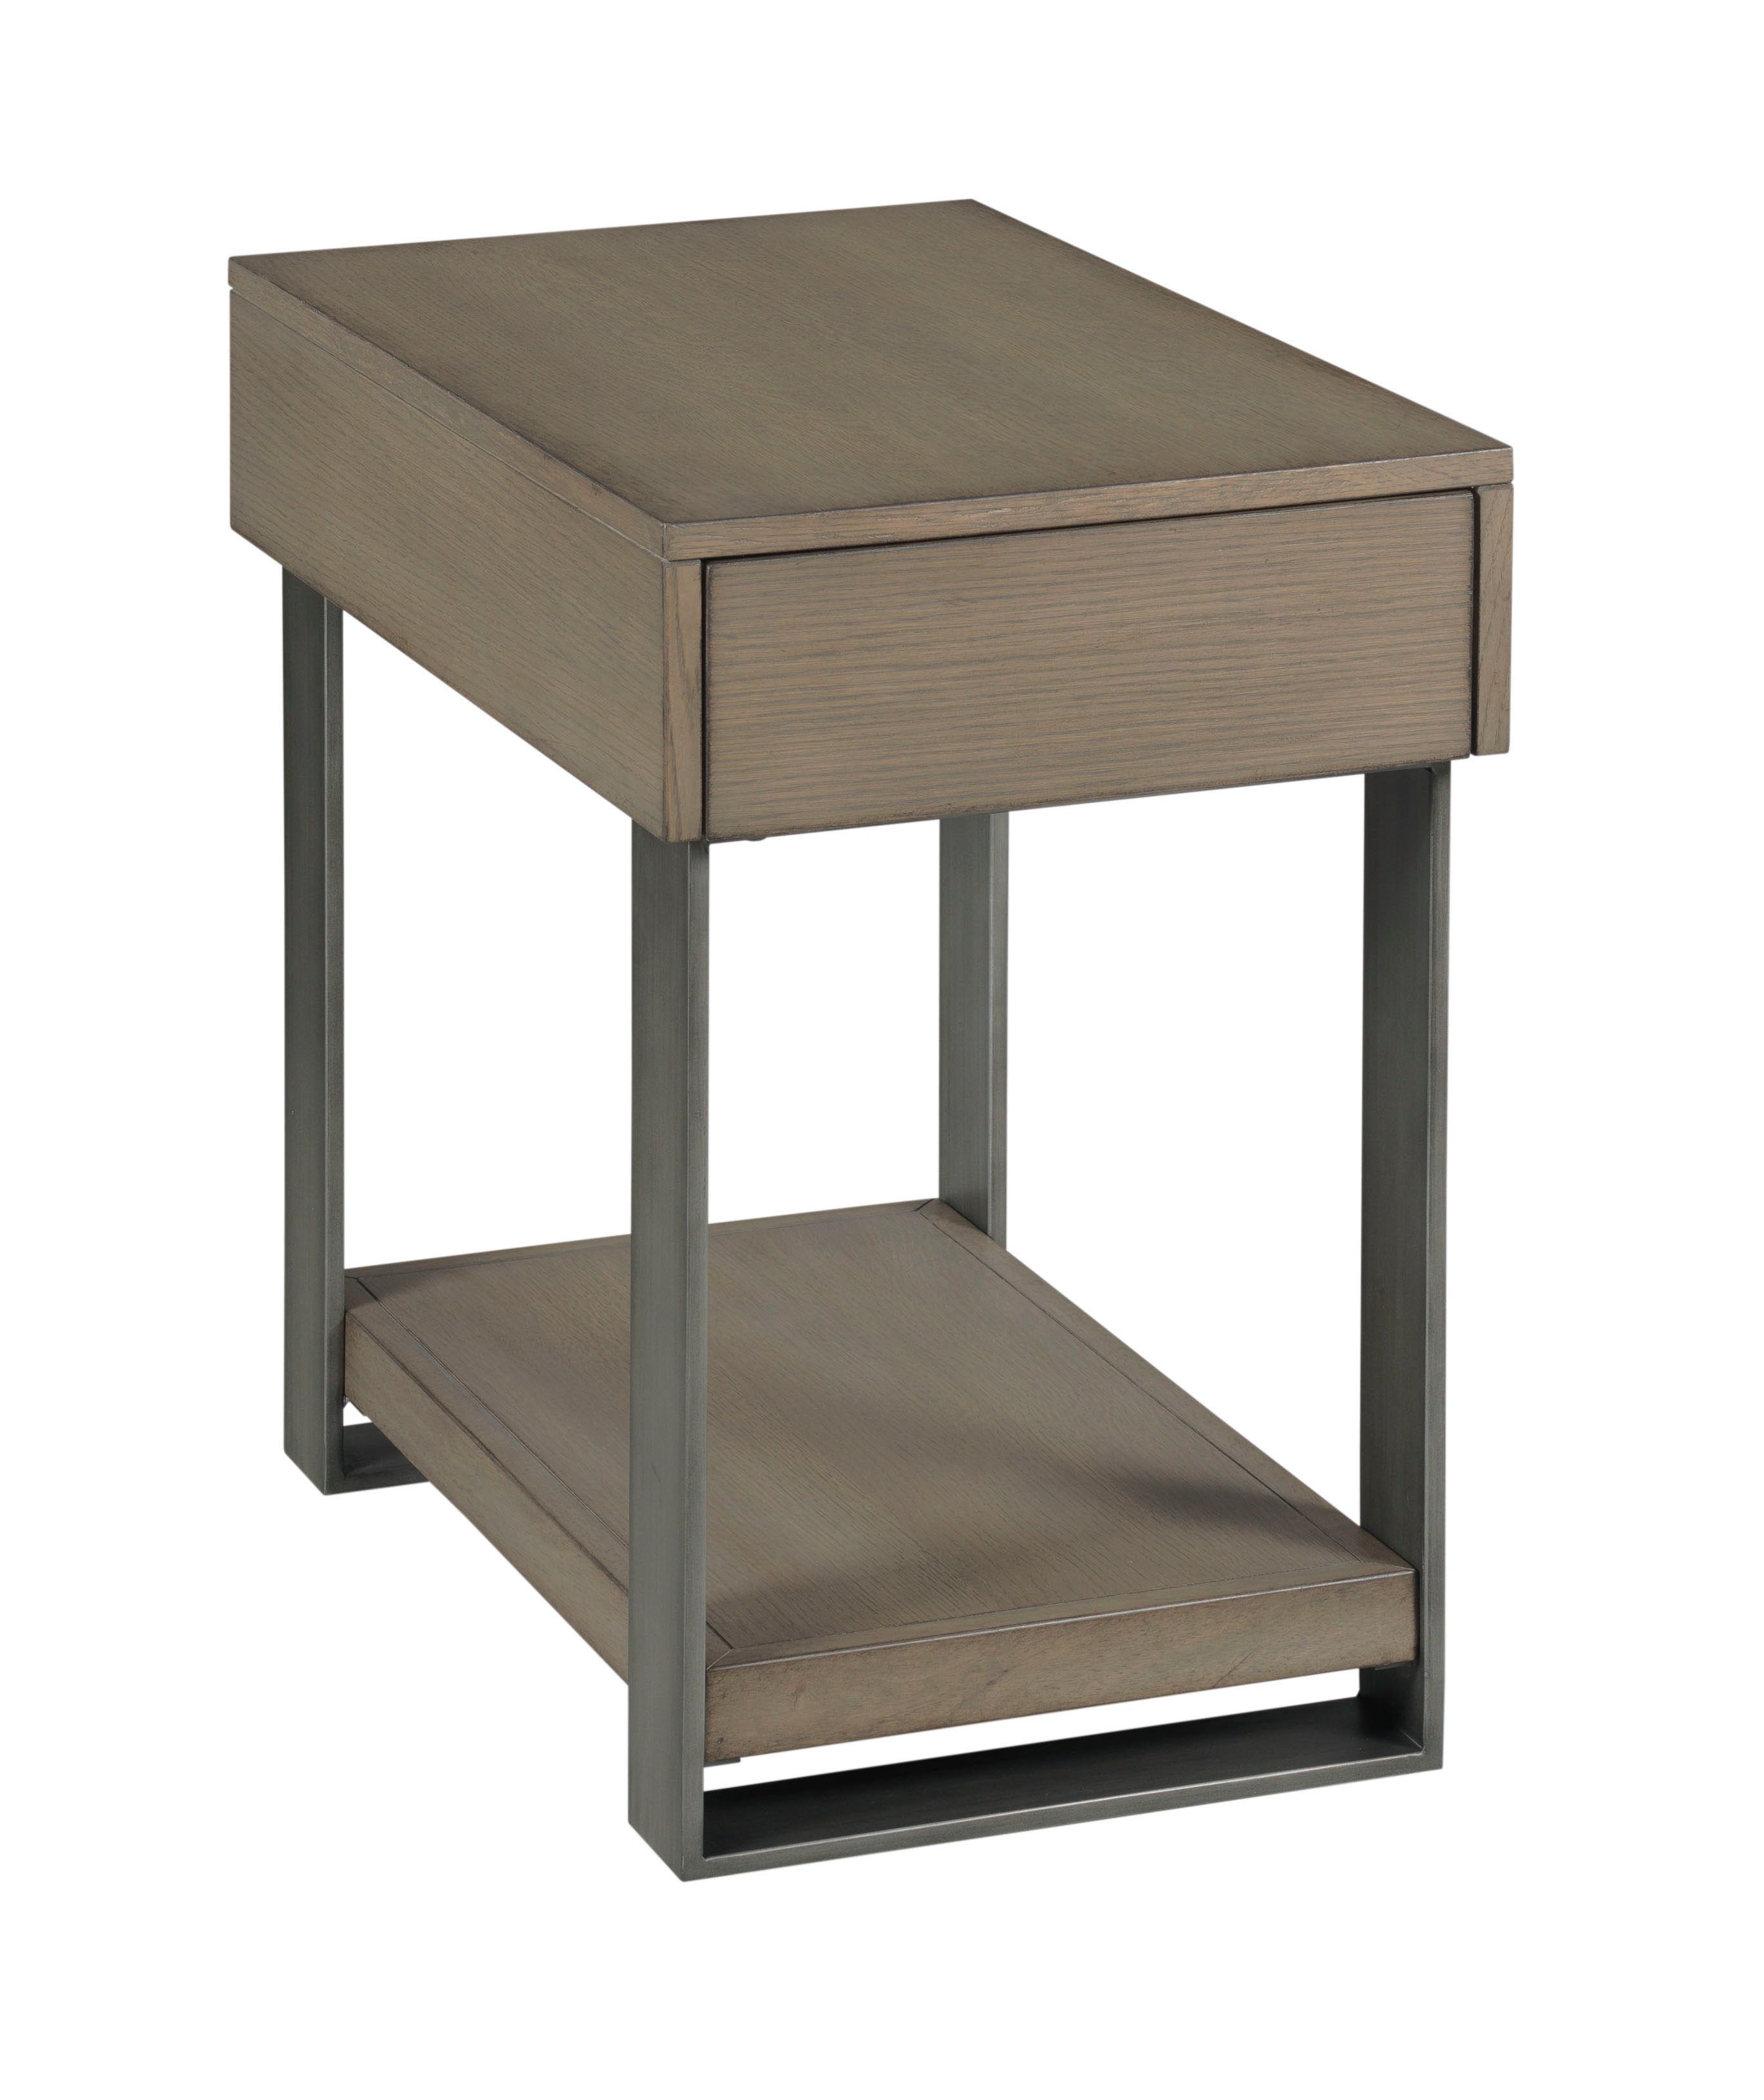 Stella Chairside Table by Hammary at Esprit Decor Home Furnishings